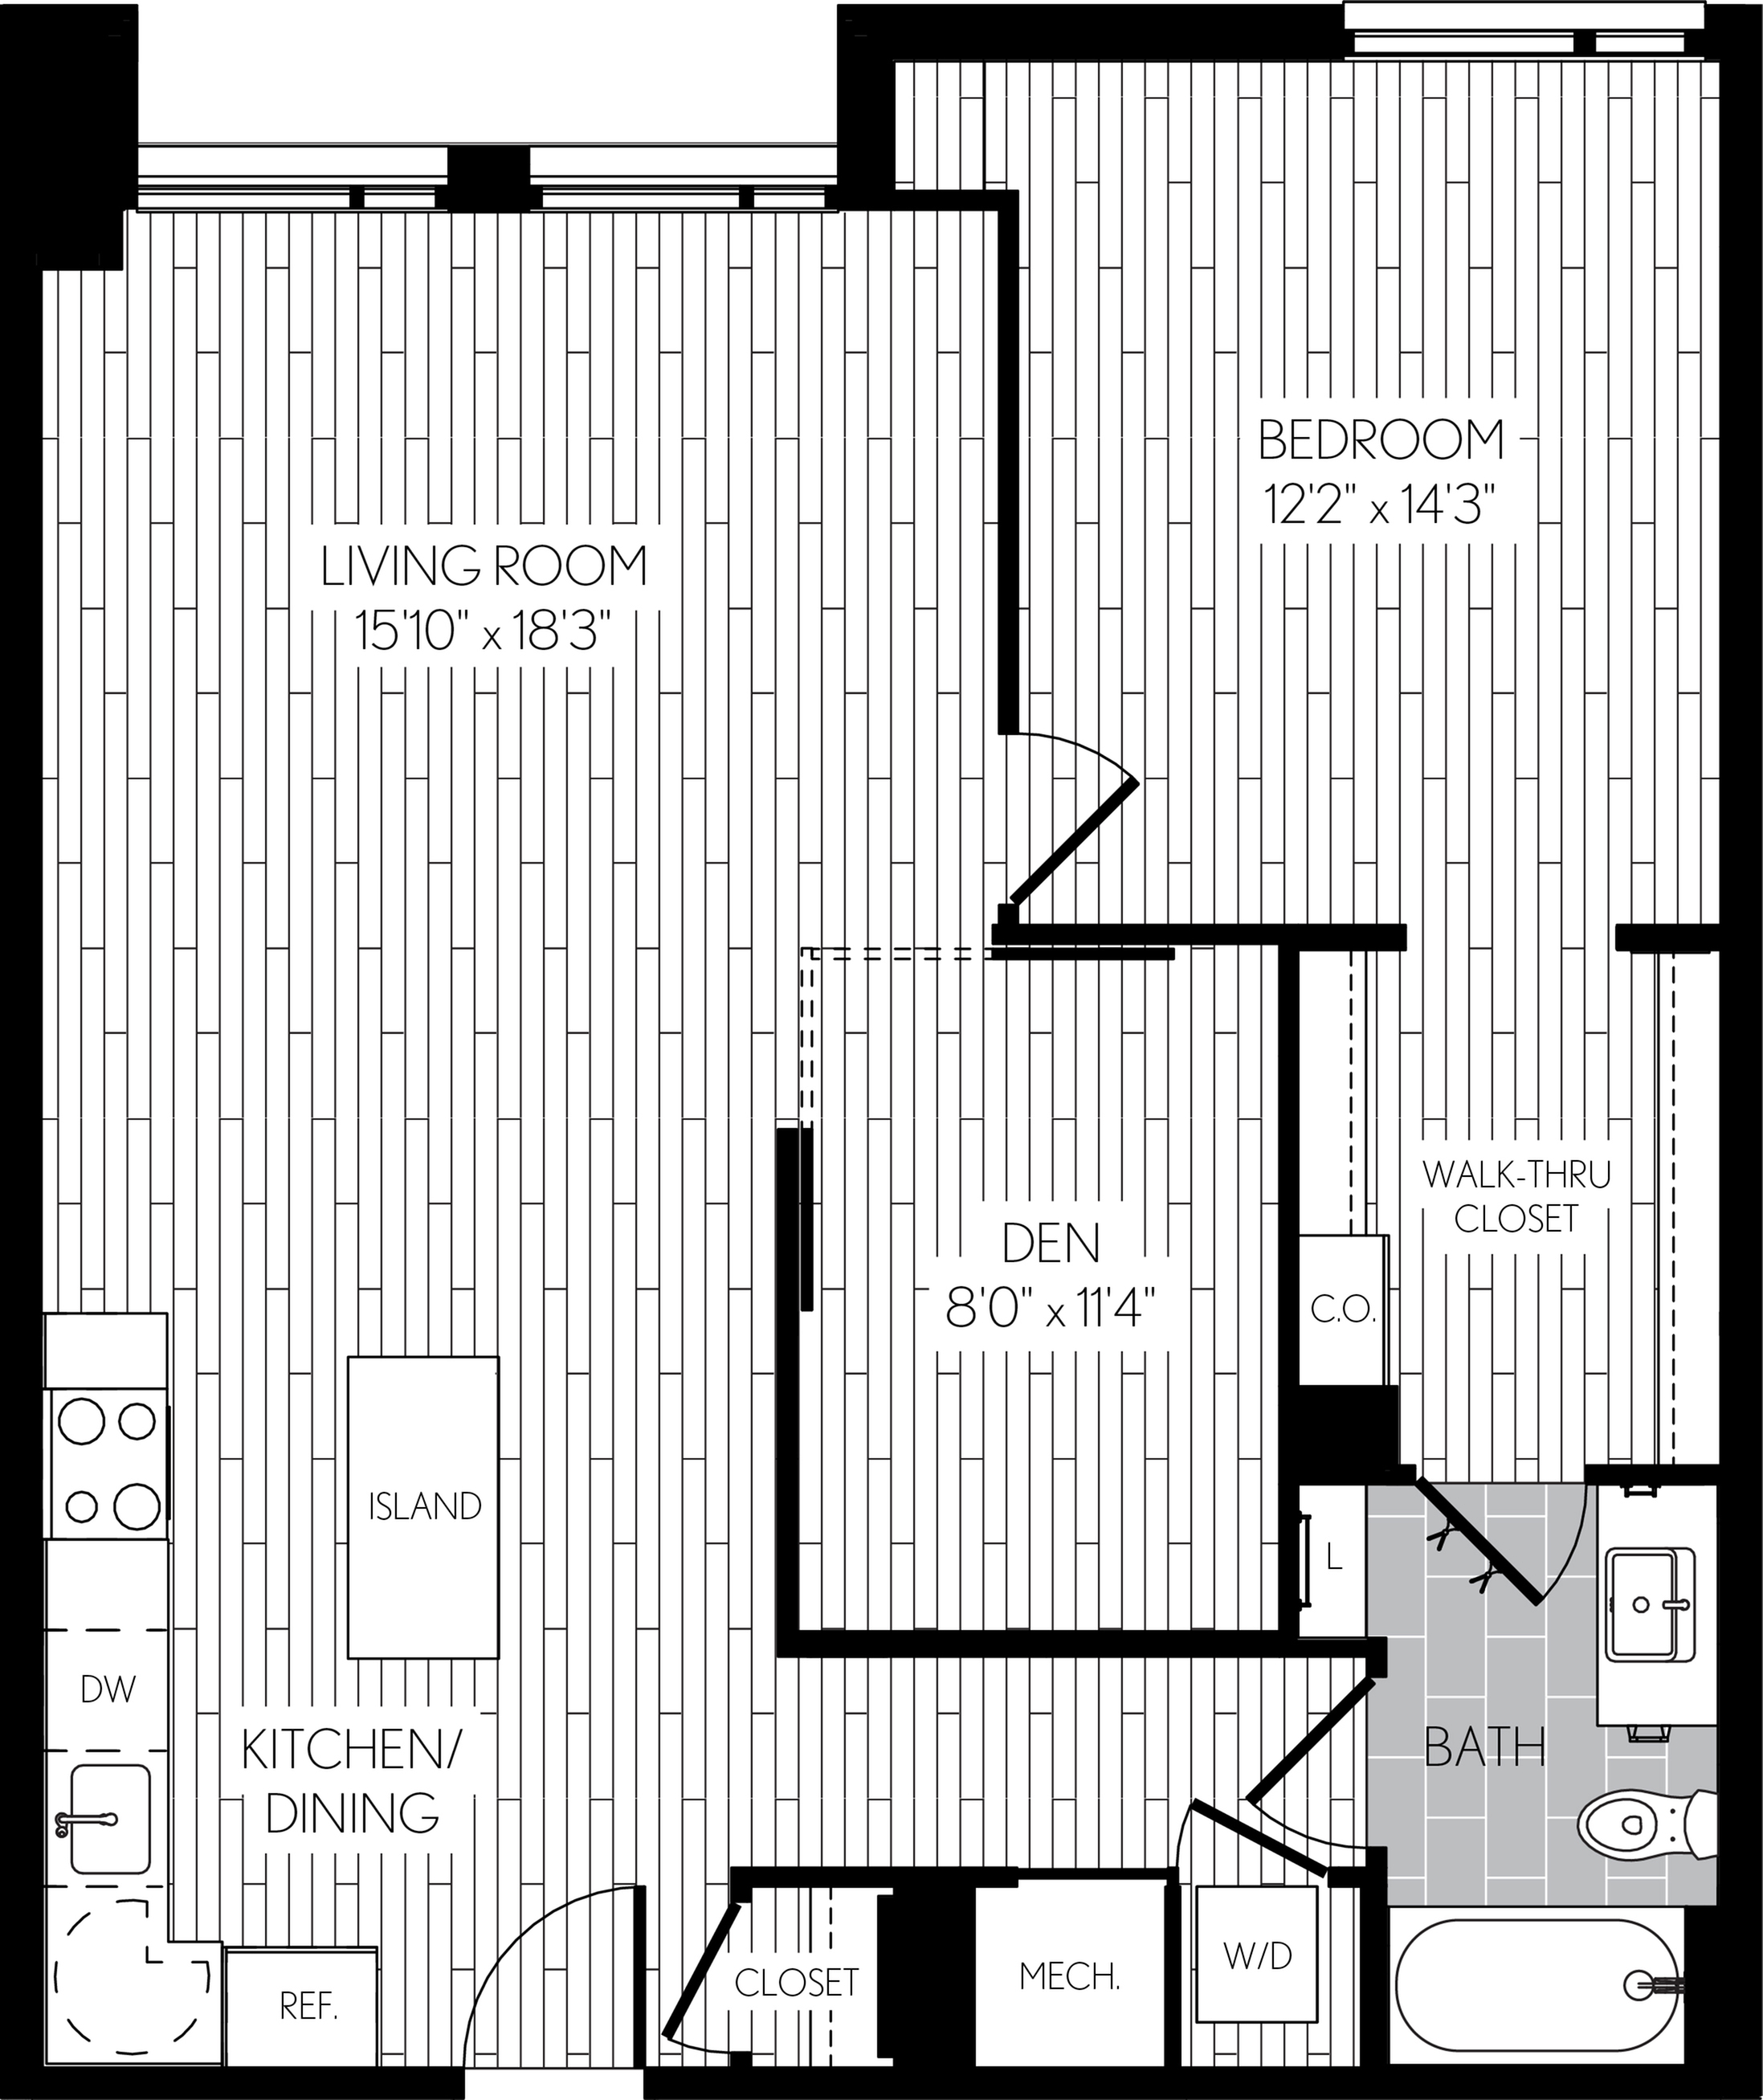 957 square foot one bedroom one bath with den apartment floorplan image